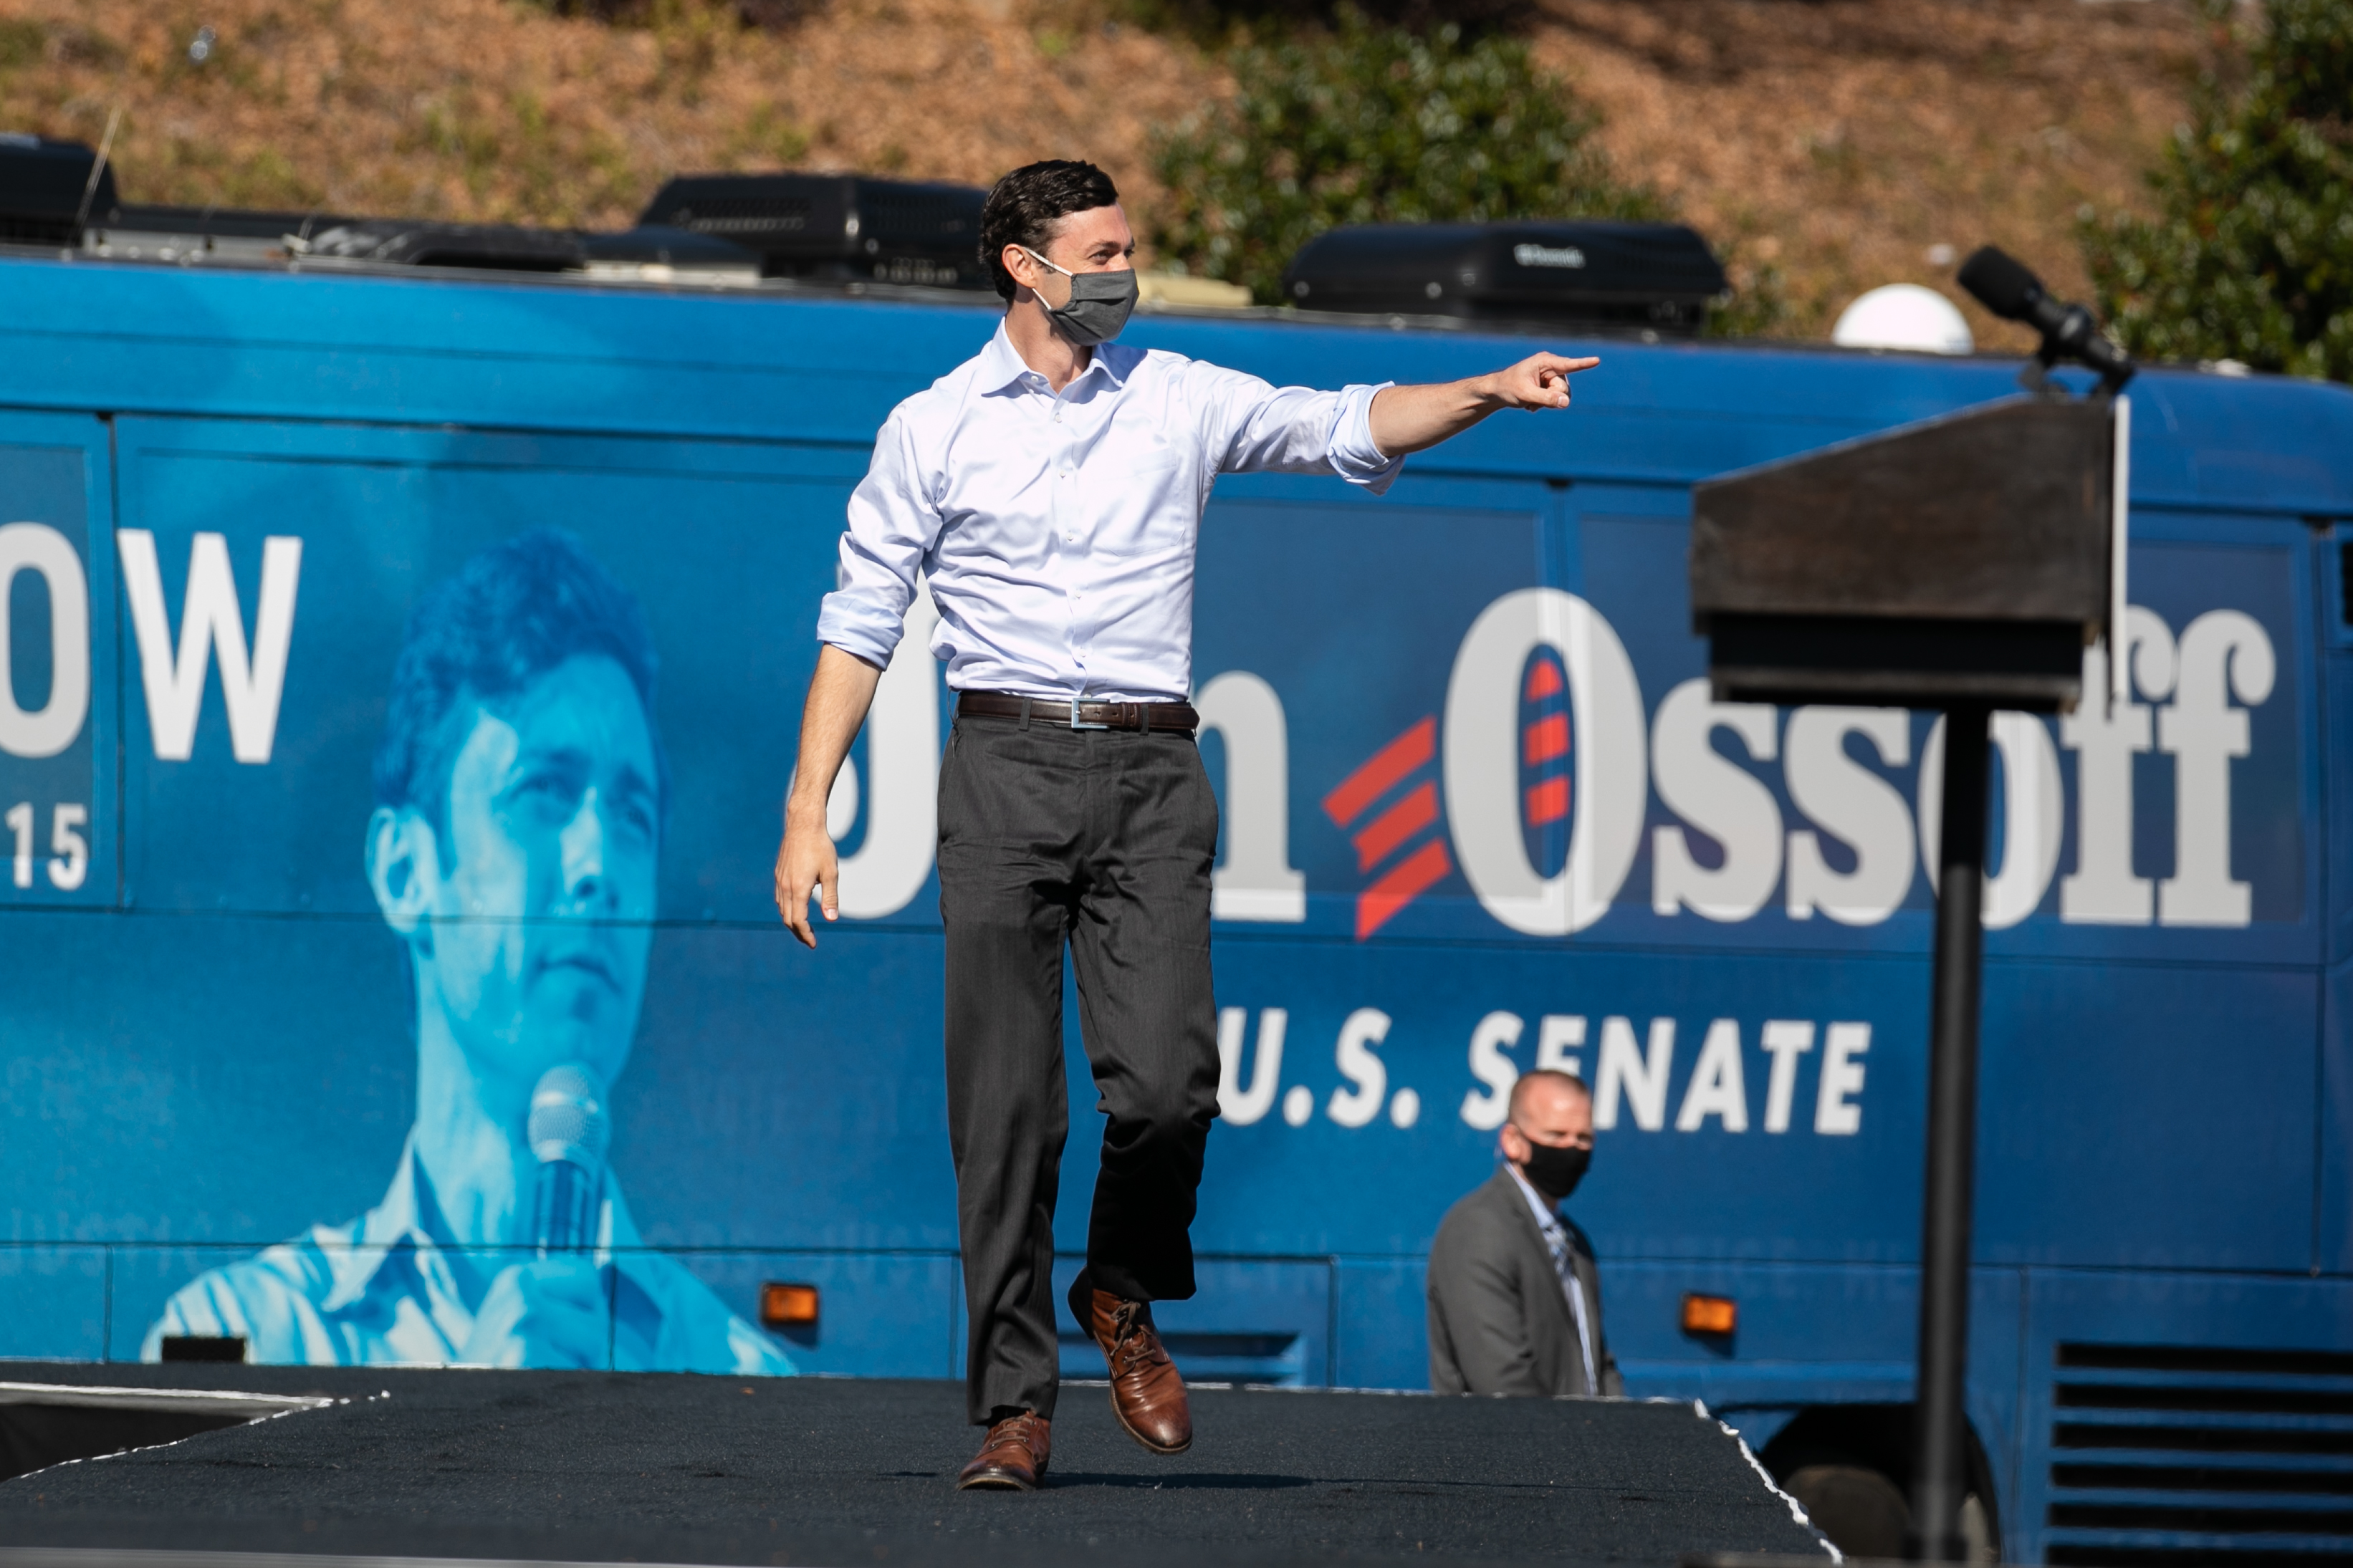 Georgia Democratic Senate candidate Jon Ossoff walks on stage during a drive-in rally at Bibb Mill Event Center on December 21, 2020 in Columbus, Georgia.